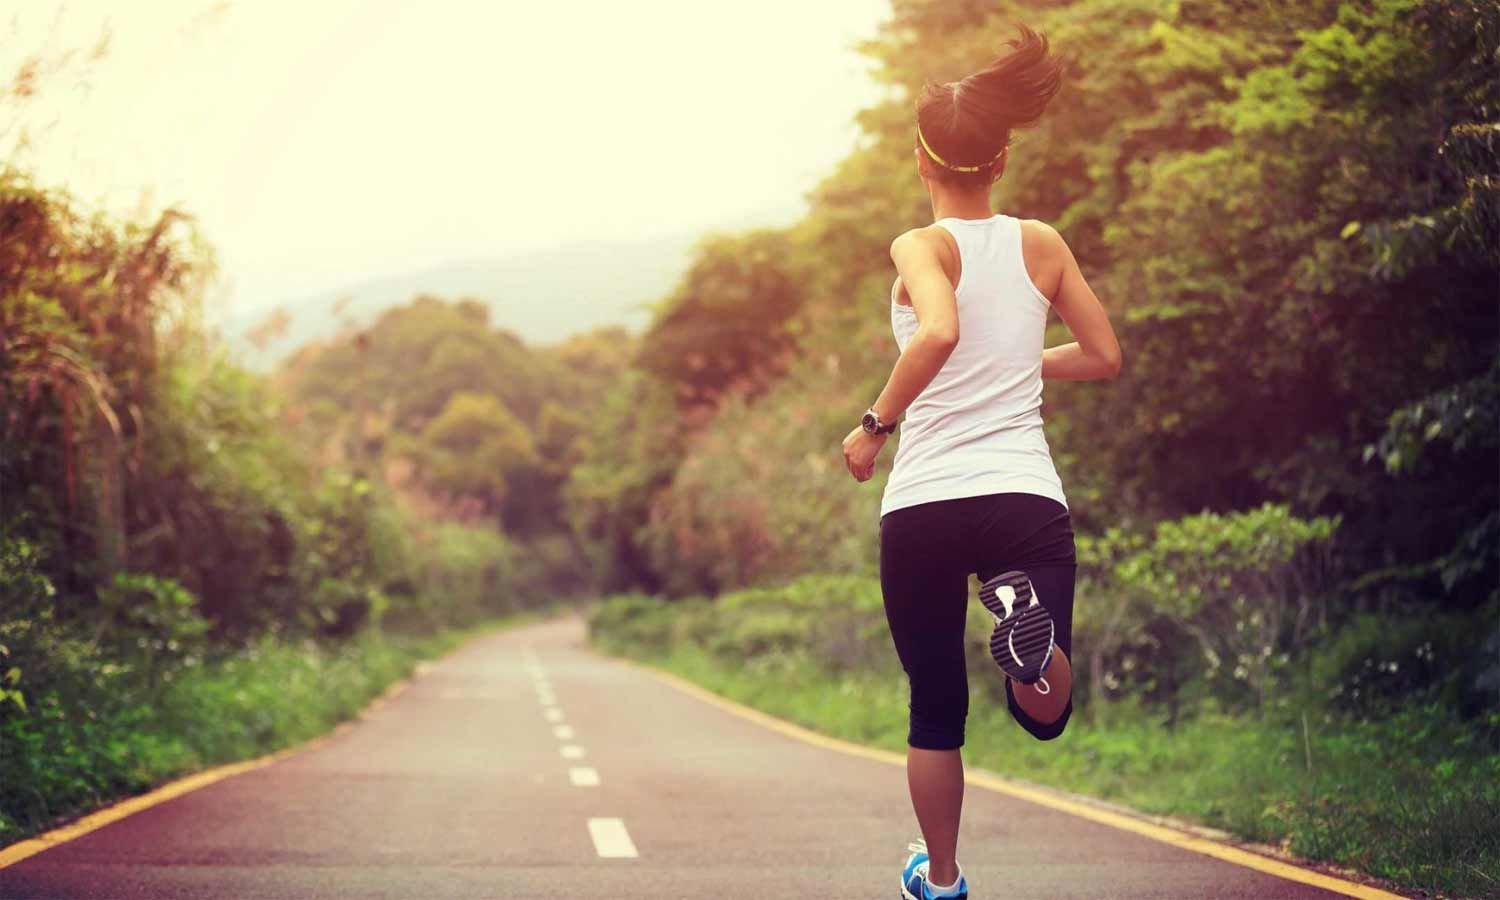 Physical activity may lower afib mortality, says HUNT study